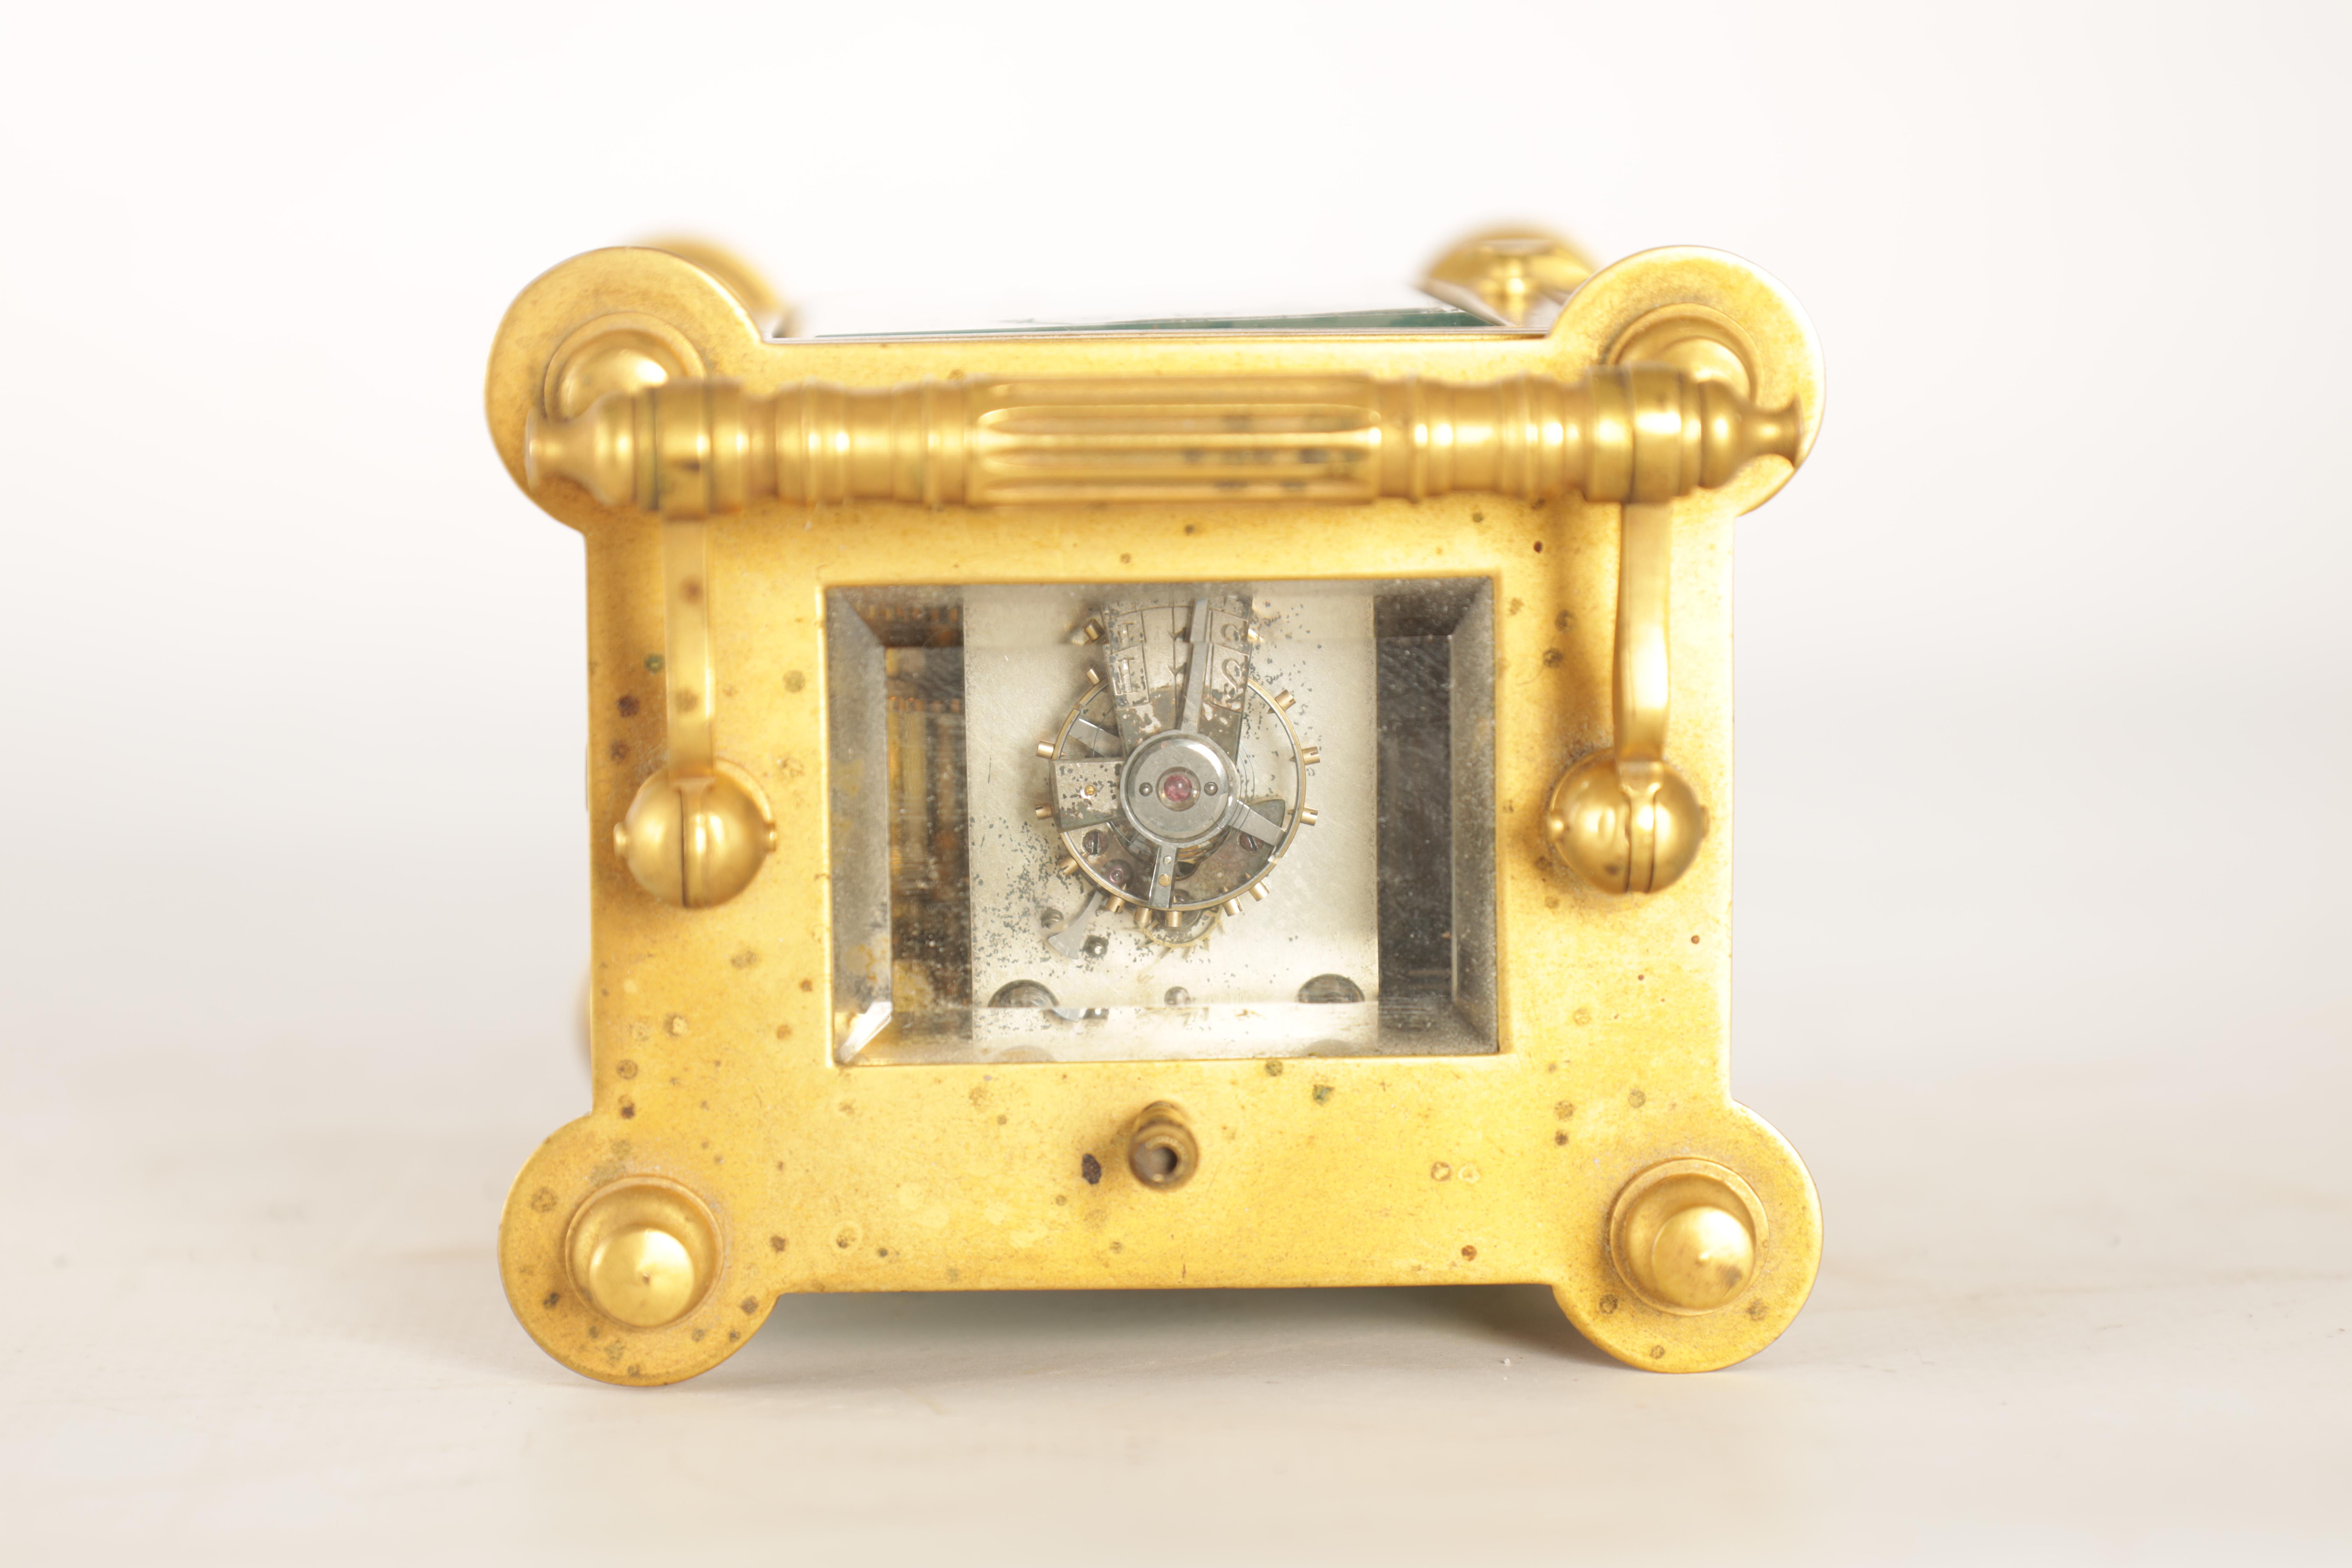 A LATE 19TH CENTURY FRENCH BRASS CARRIAGE CLOCK WITH CALENDAR the gilt case with pierced frieze - Image 3 of 6